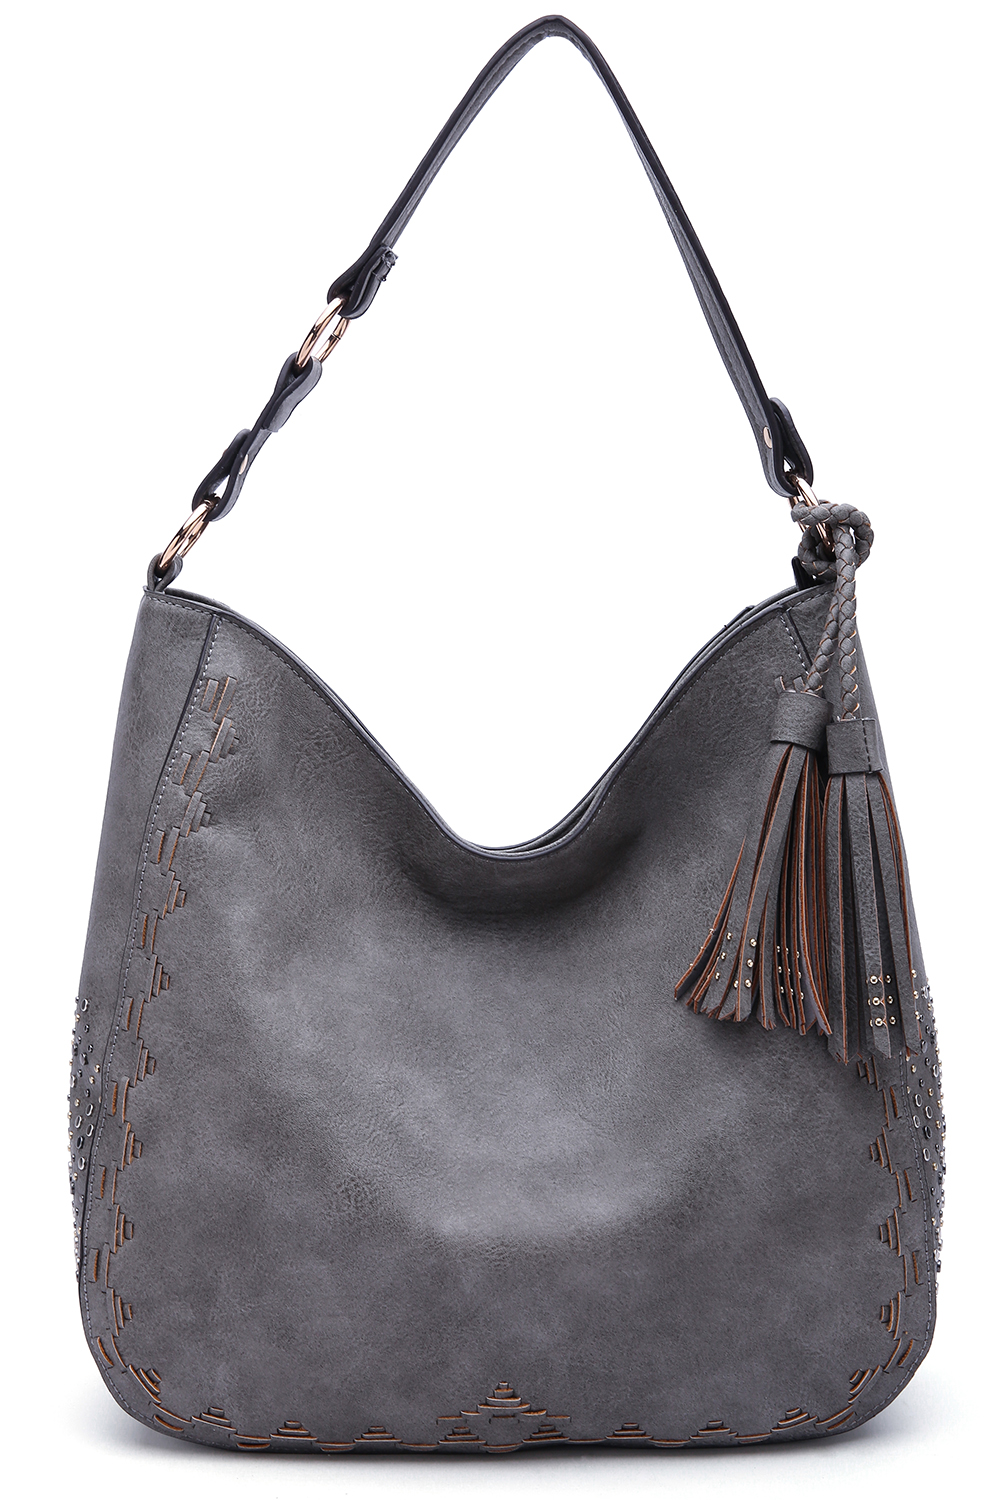 MKF Collection by Mia K. Farrow Darla Hobo